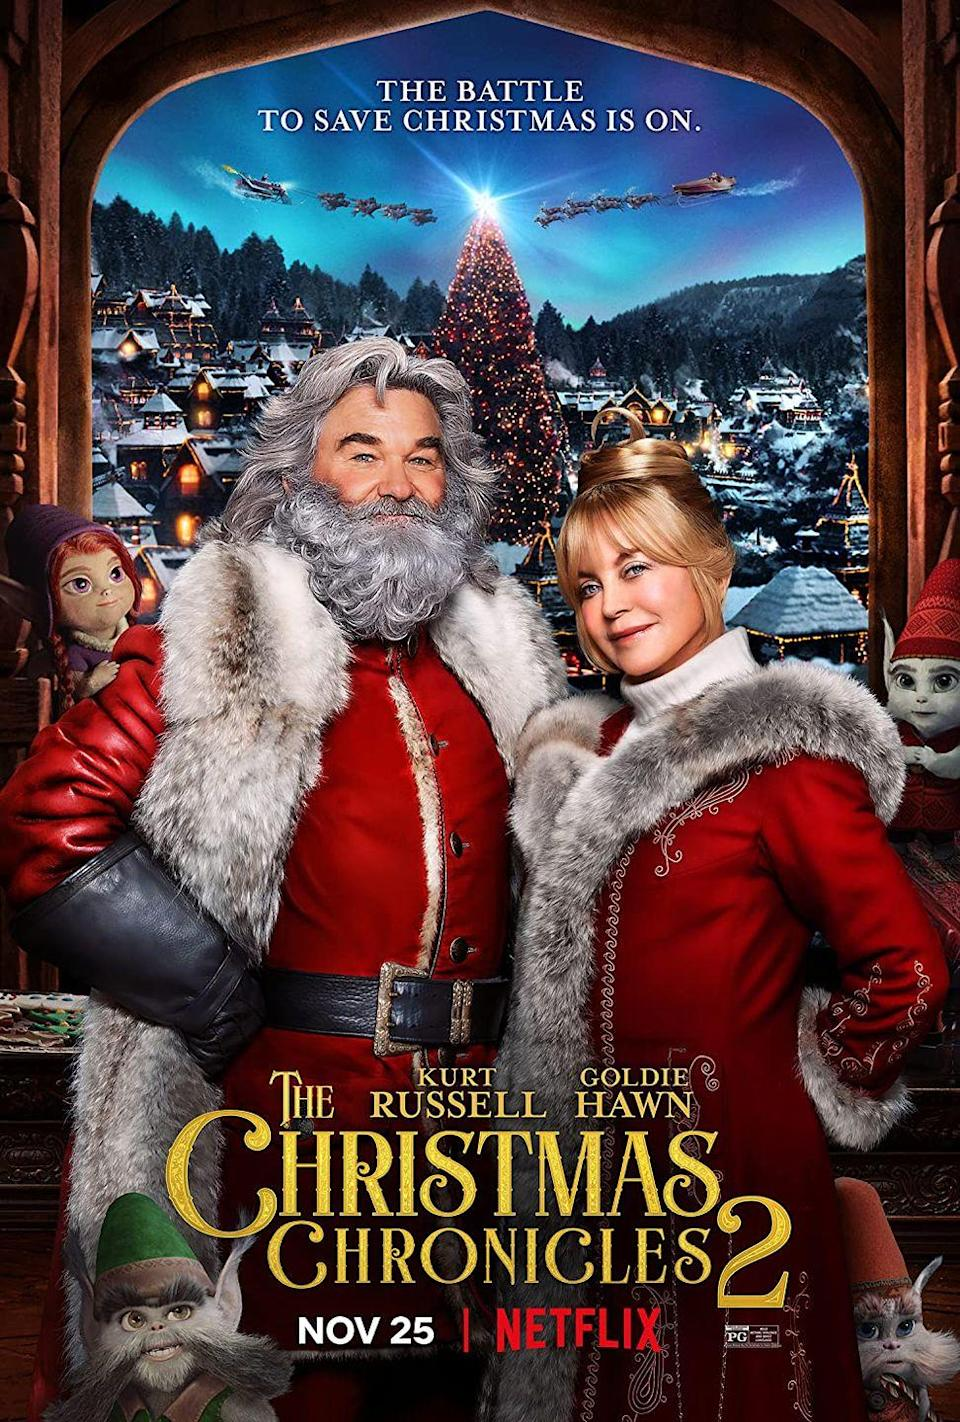 """<p>The Clauses (played by better halves in real life <em>and</em> the North Pole, Kurt Russell and Goldie Hawn) are unexpectedly reunited with those kids who gave them so much trouble in the first <em>Christmas Chronicles</em> film when the holiday is threatened to be cancelled forever.</p><p><a class=""""link rapid-noclick-resp"""" href=""""https://www.netflix.com/title/80988988"""" rel=""""nofollow noopener"""" target=""""_blank"""" data-ylk=""""slk:Watch Now"""">Watch Now</a></p>"""